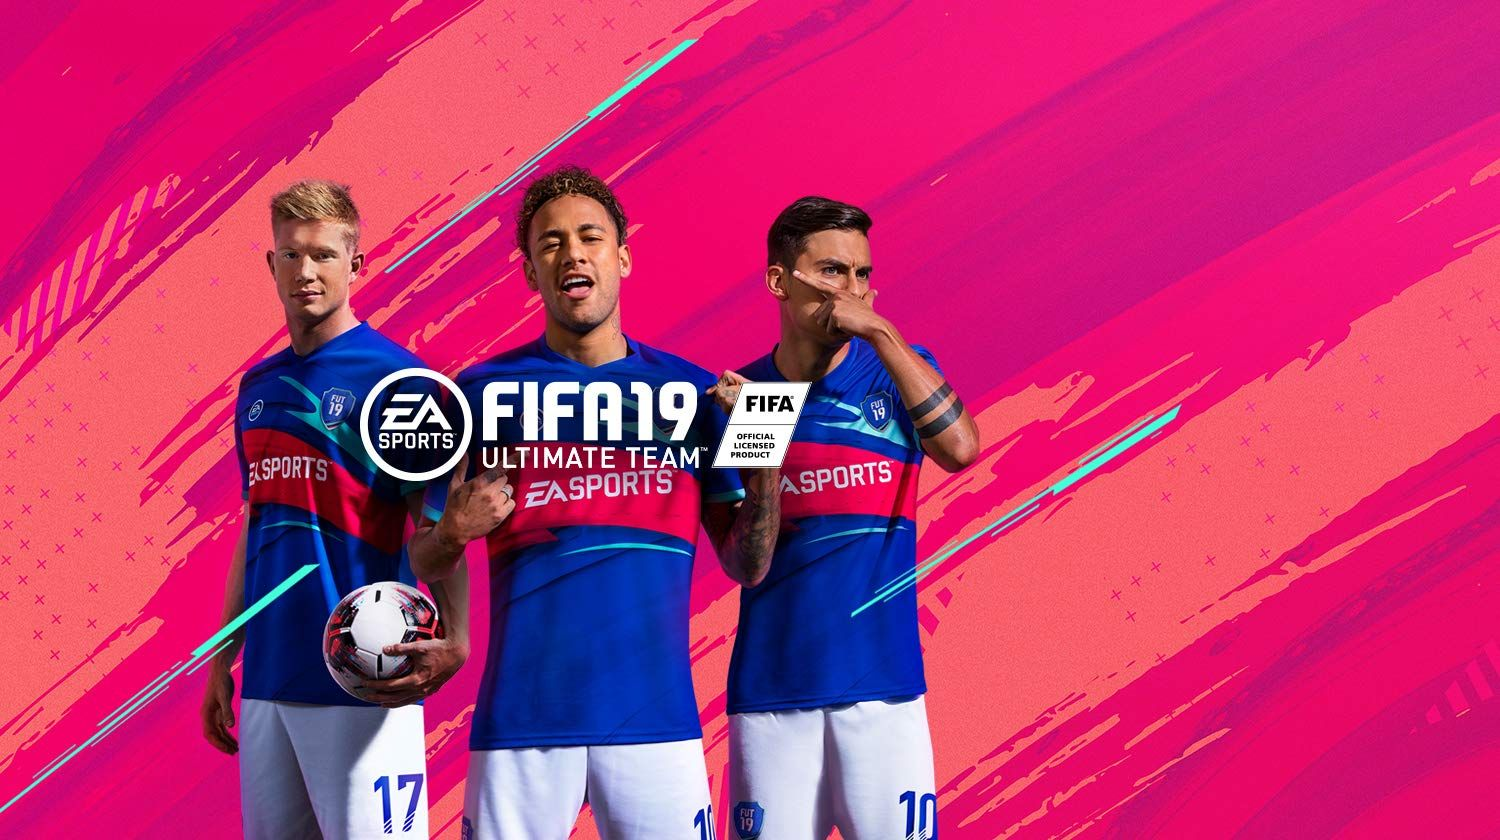 Fifa 19 12000 Fifa Points Ps4 Digital Code Fifa Points Code Digital With Images Video Game Reviews Fifa Ps4 Digital Code